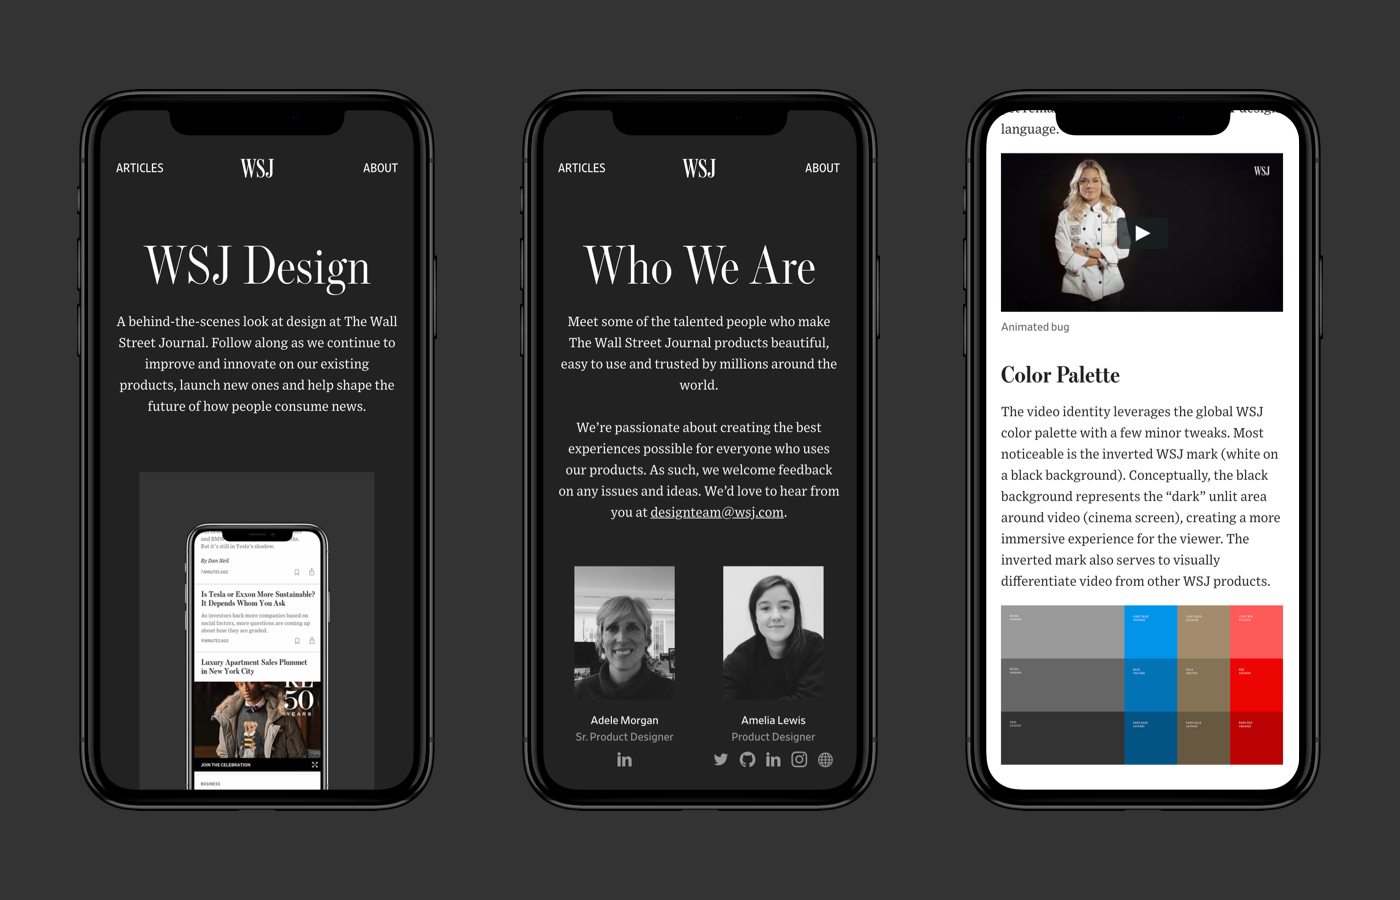 design.wsj.com – a public blog showcasing our work and team.